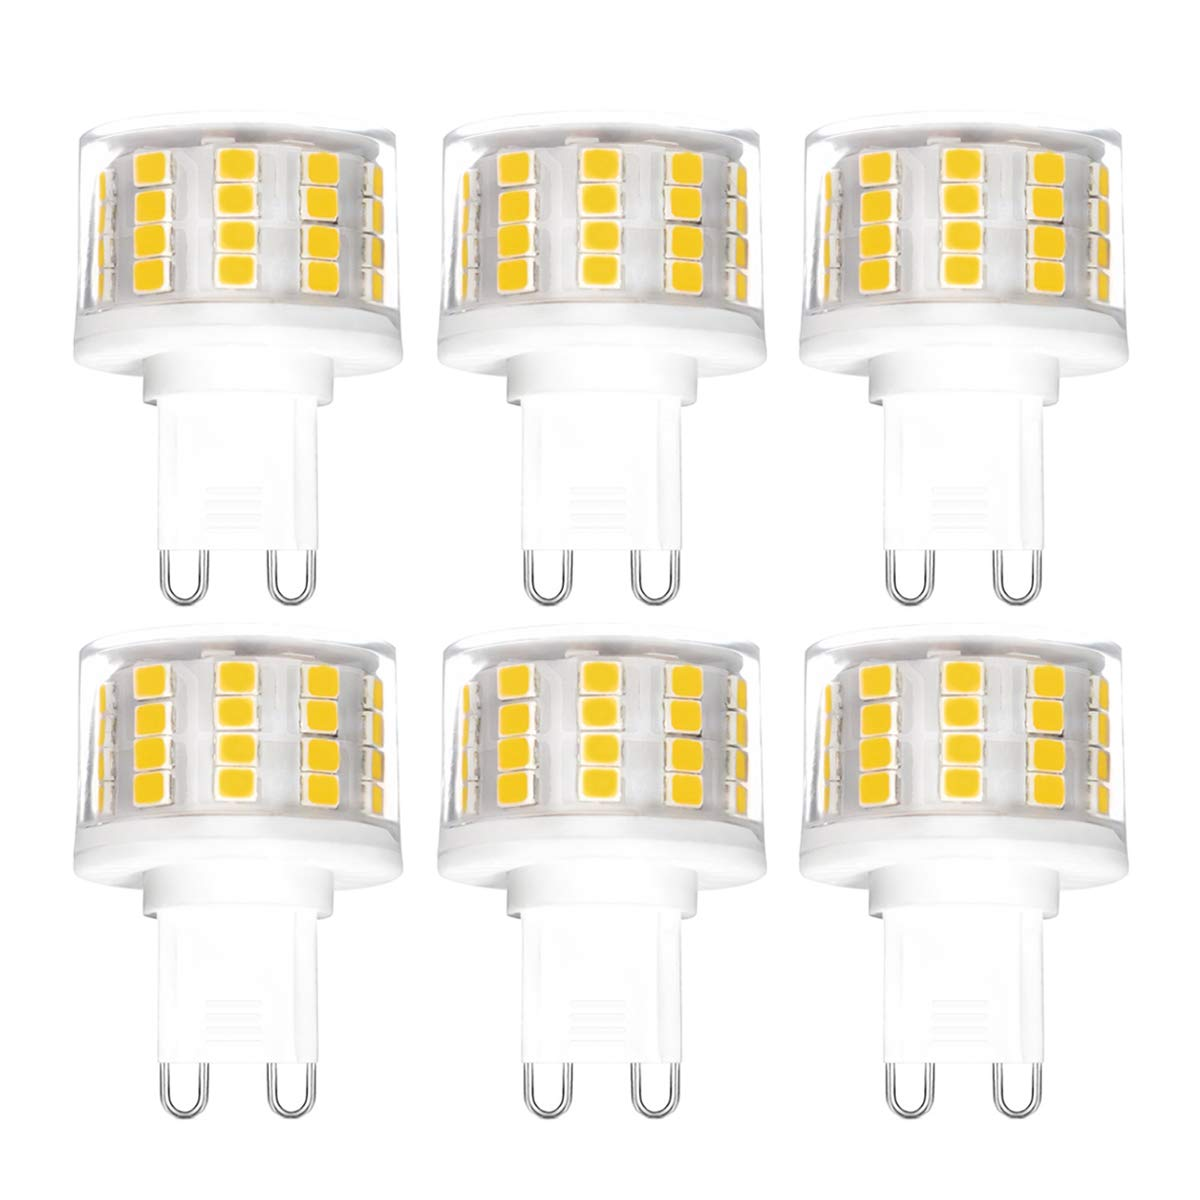 Led G9 5w 17 99 G9 5w Led Light Bulbs No Flicker Dimmable 5w Equivalent